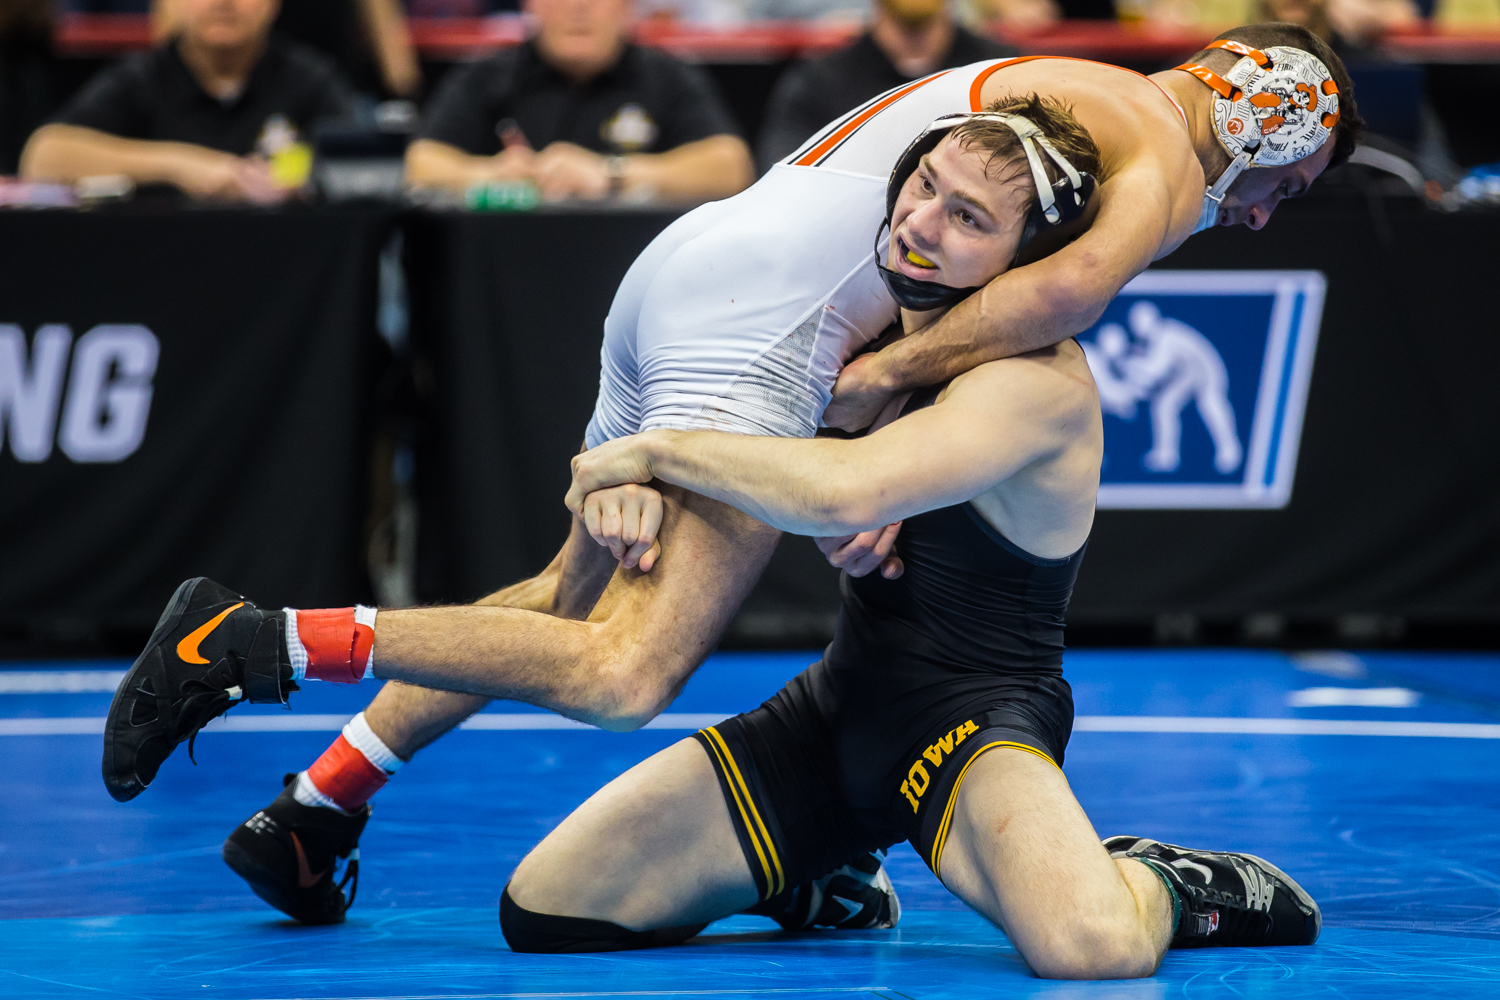 Iowa%E2%80%99s+125-pound+Spencer+Lee+wrestles+Oklahoma+State%E2%80%99s+Nicholas+Piccininni+during+the+fourth+session+of+the+2019+NCAA+D1+Wrestling+Championships+at+PPG+Paints+Arena+in+Pittsburgh%2C+PA+on+Friday%2C+March+22%2C+2019.+Lee+won+by+decision%2C+11-4%2C+and+earned+a+spot+in+the+finals+of+his+weight+class.